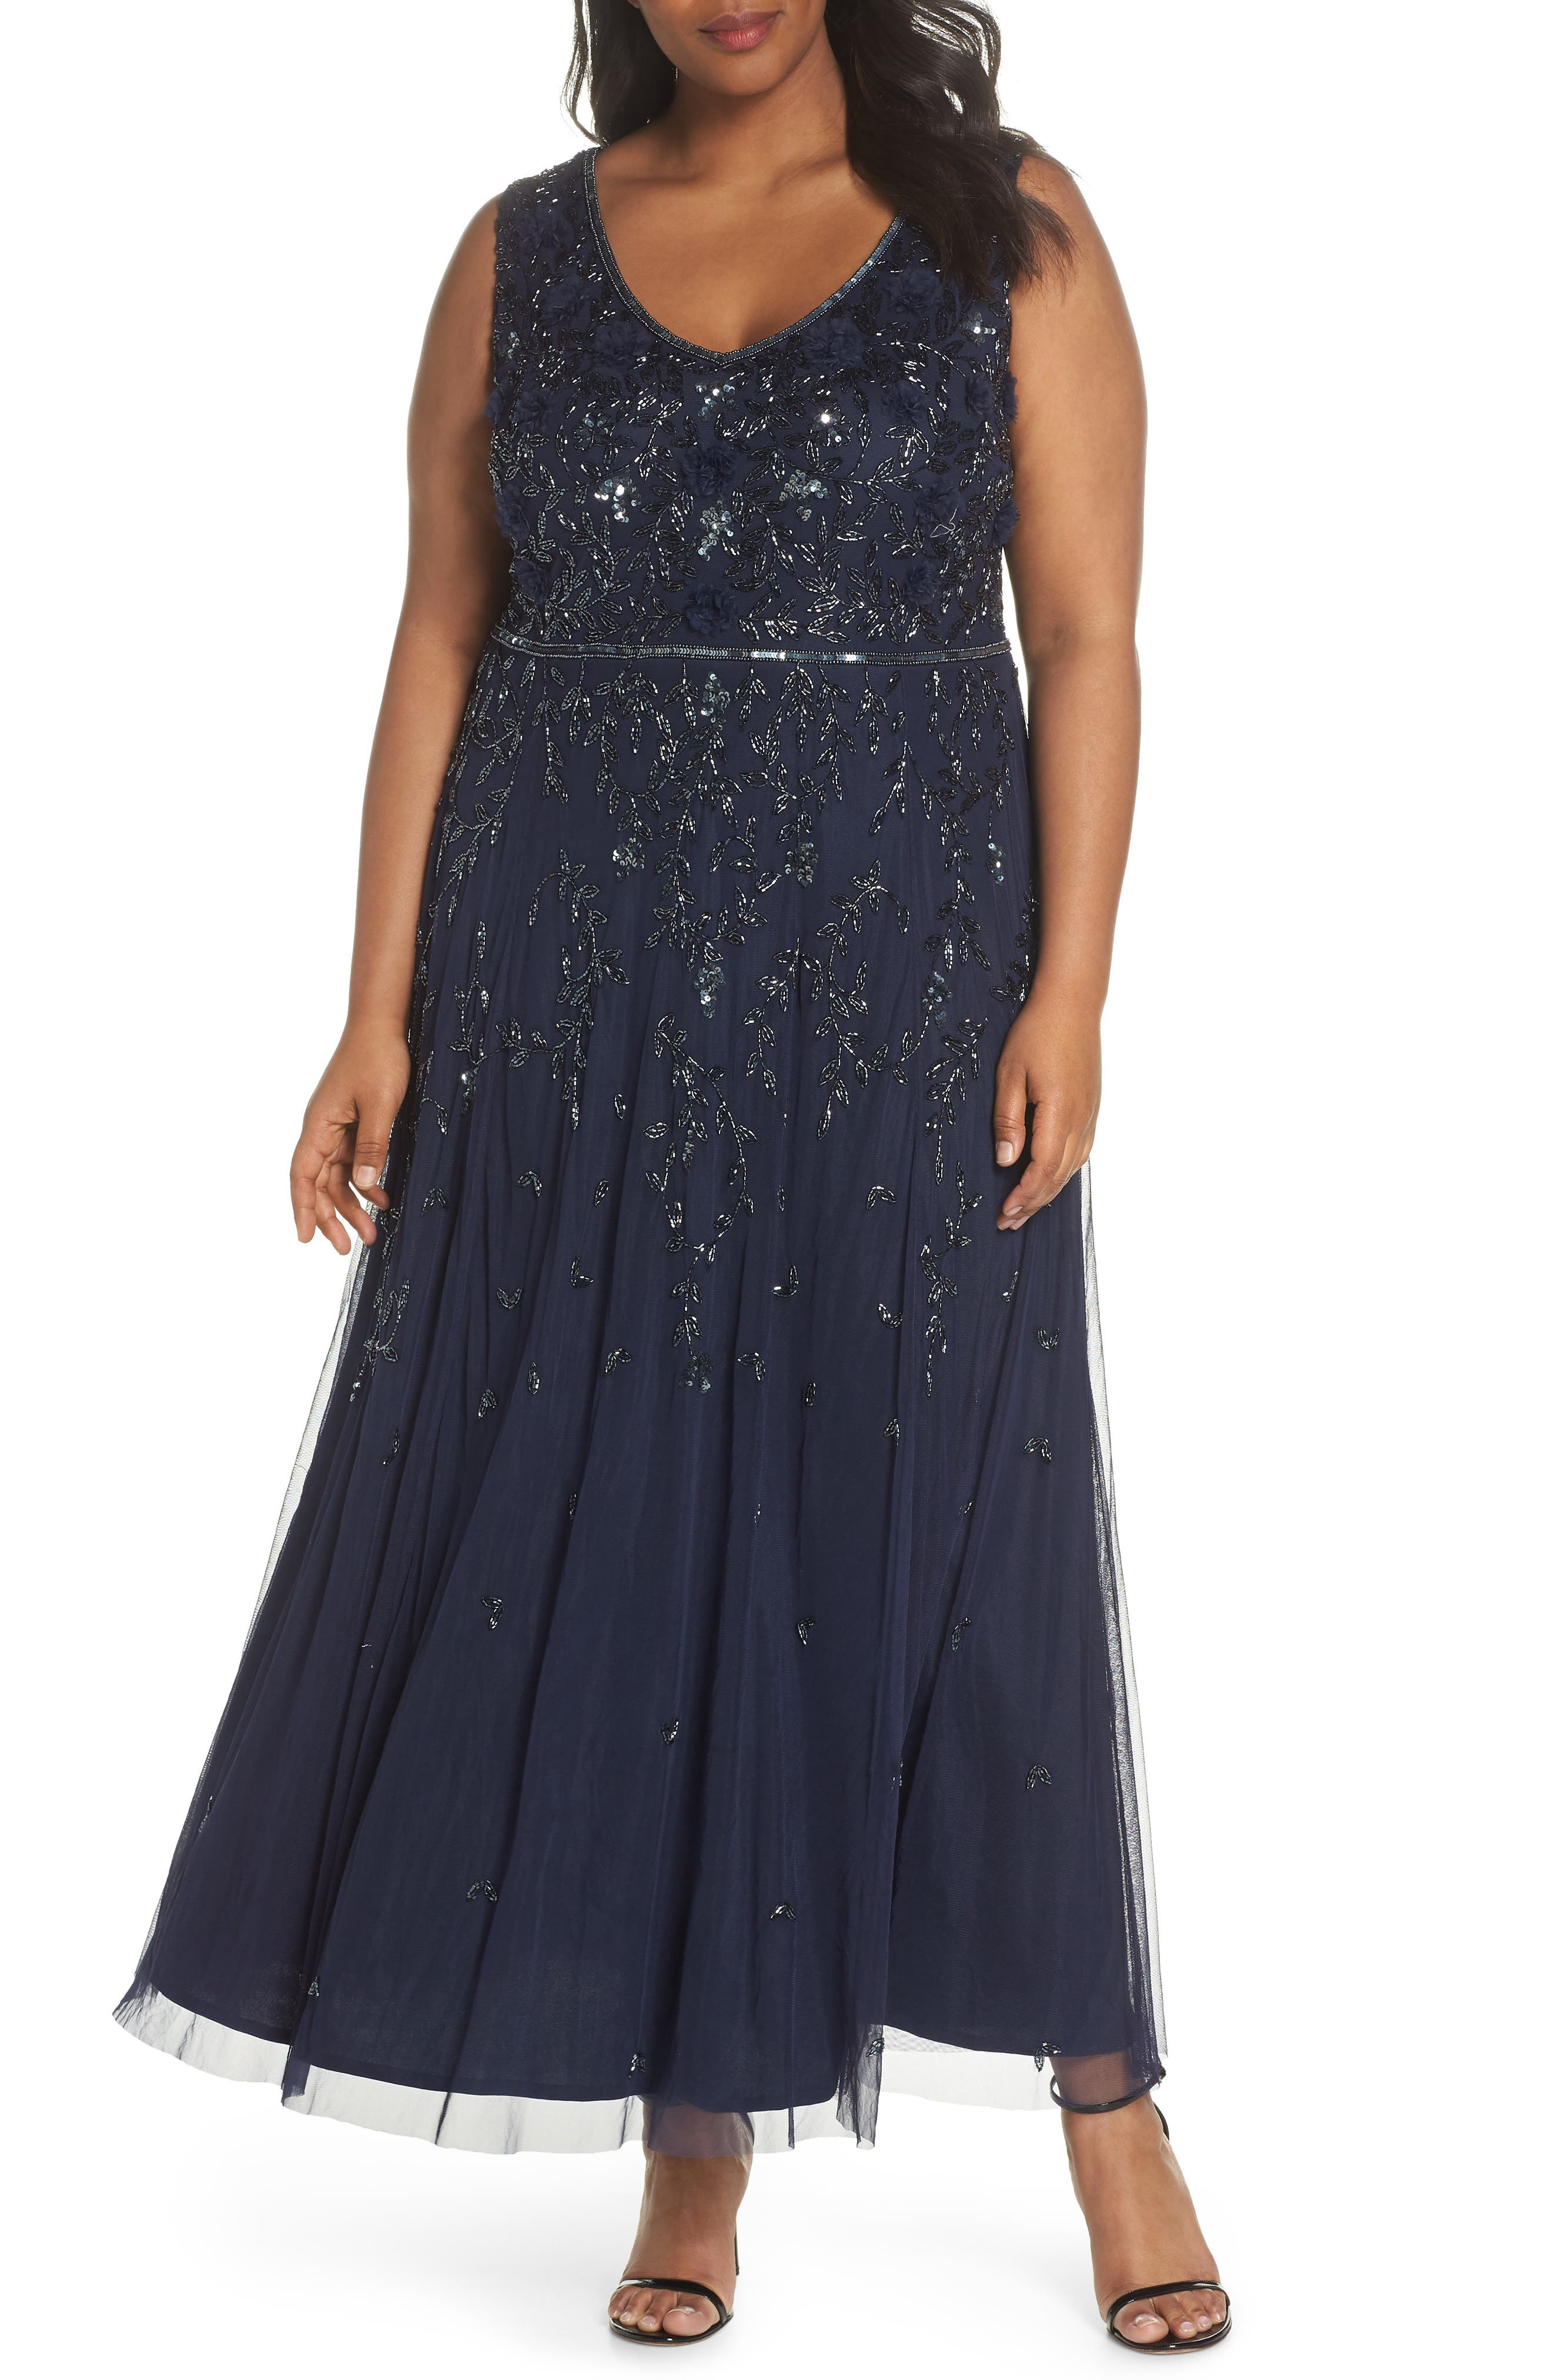 3D Embellished Mesh A-Line Gown,                             Main thumbnail 1, color,                             Navy